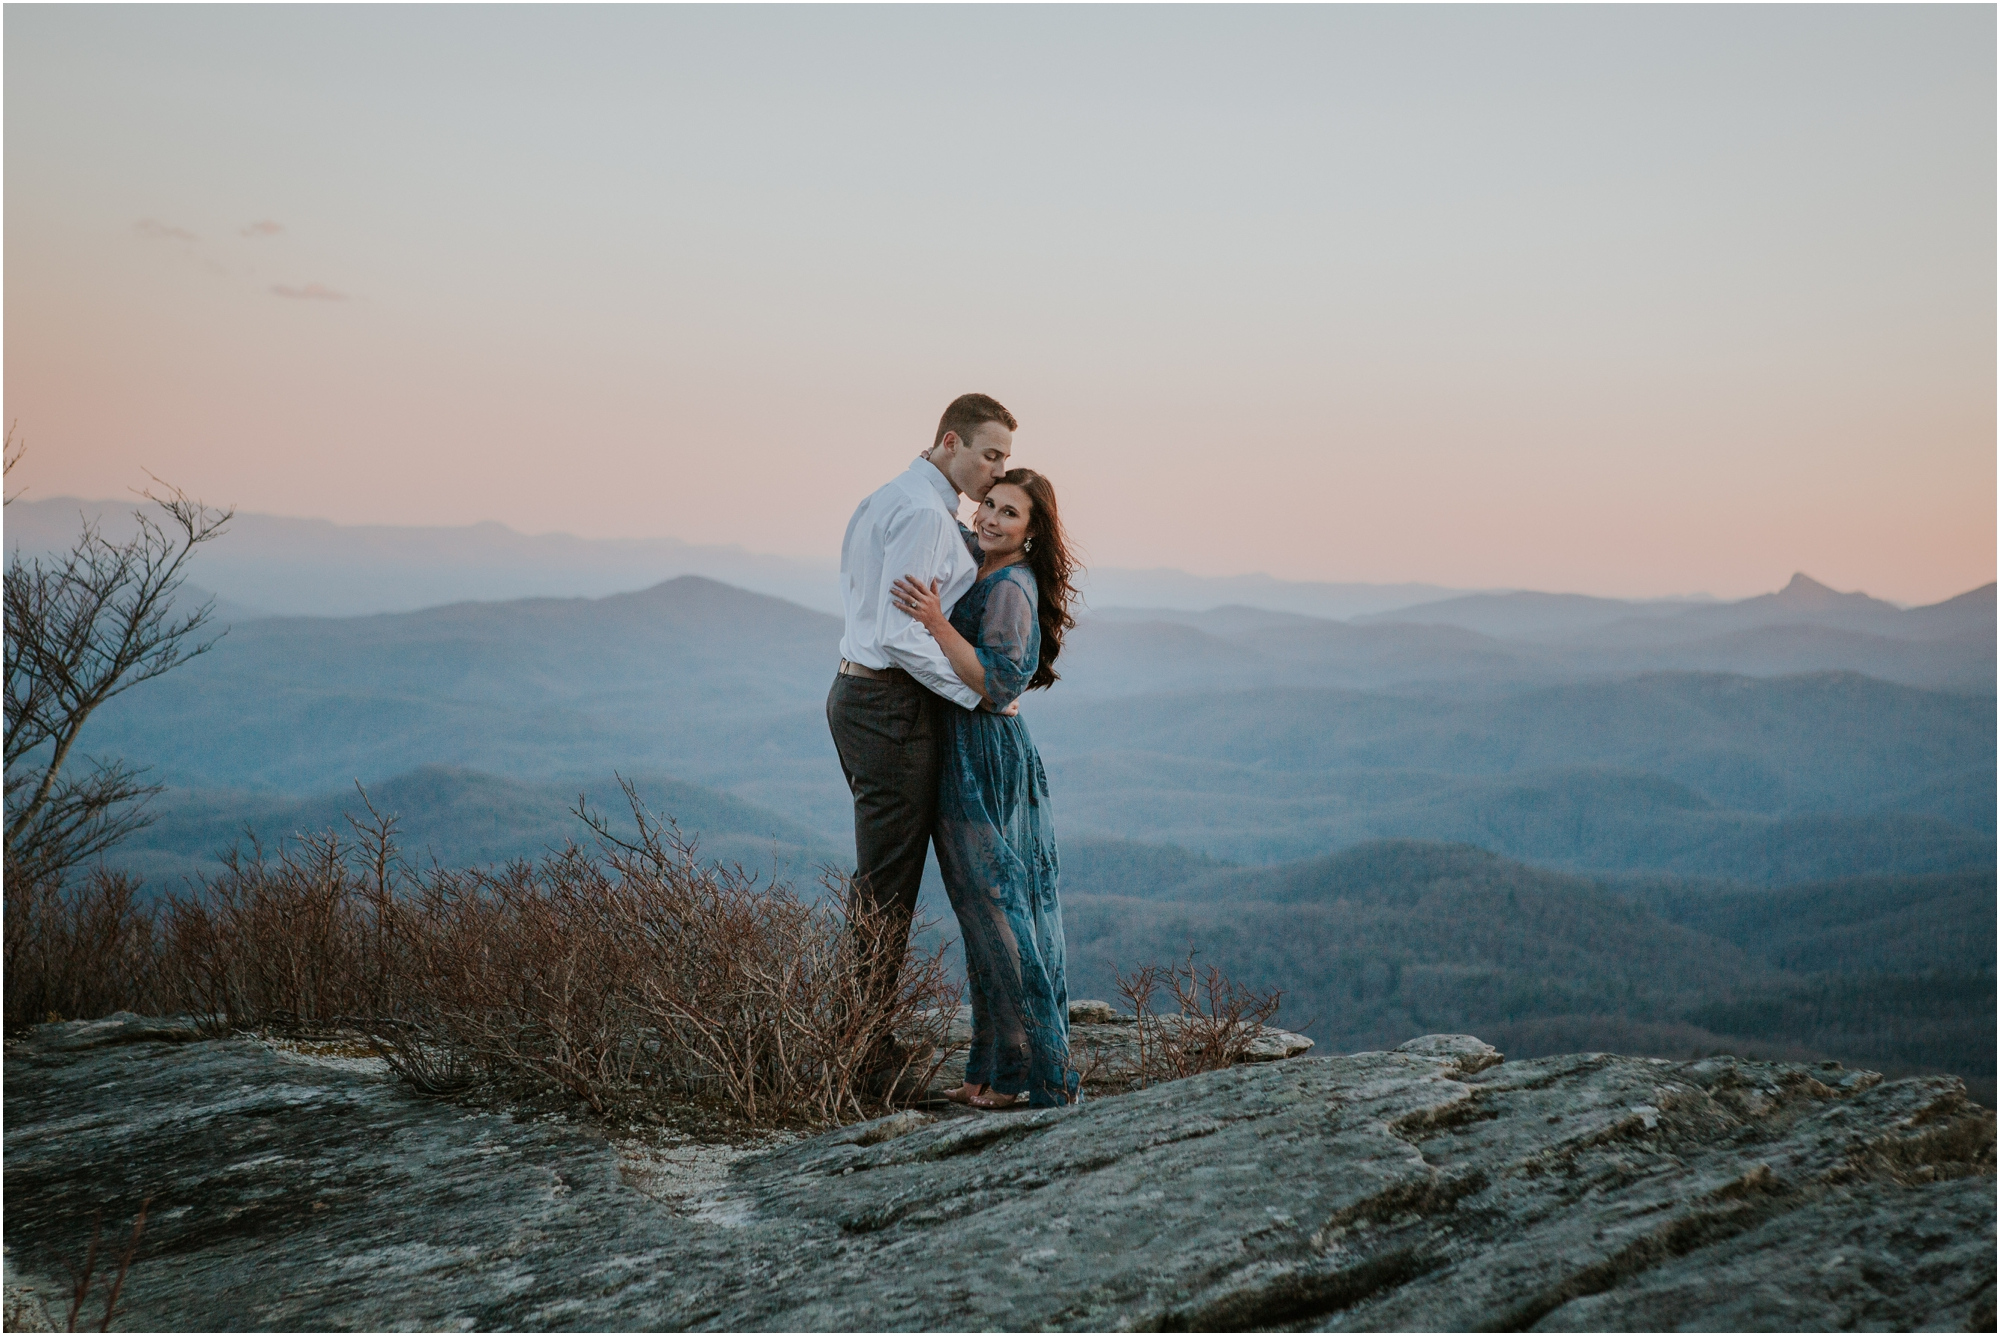 blue-ridge-parkway-engagement-session-north-carolina-boone-blowing-rock-northeast-tennessee-katy-sergent-photography_0027.jpg